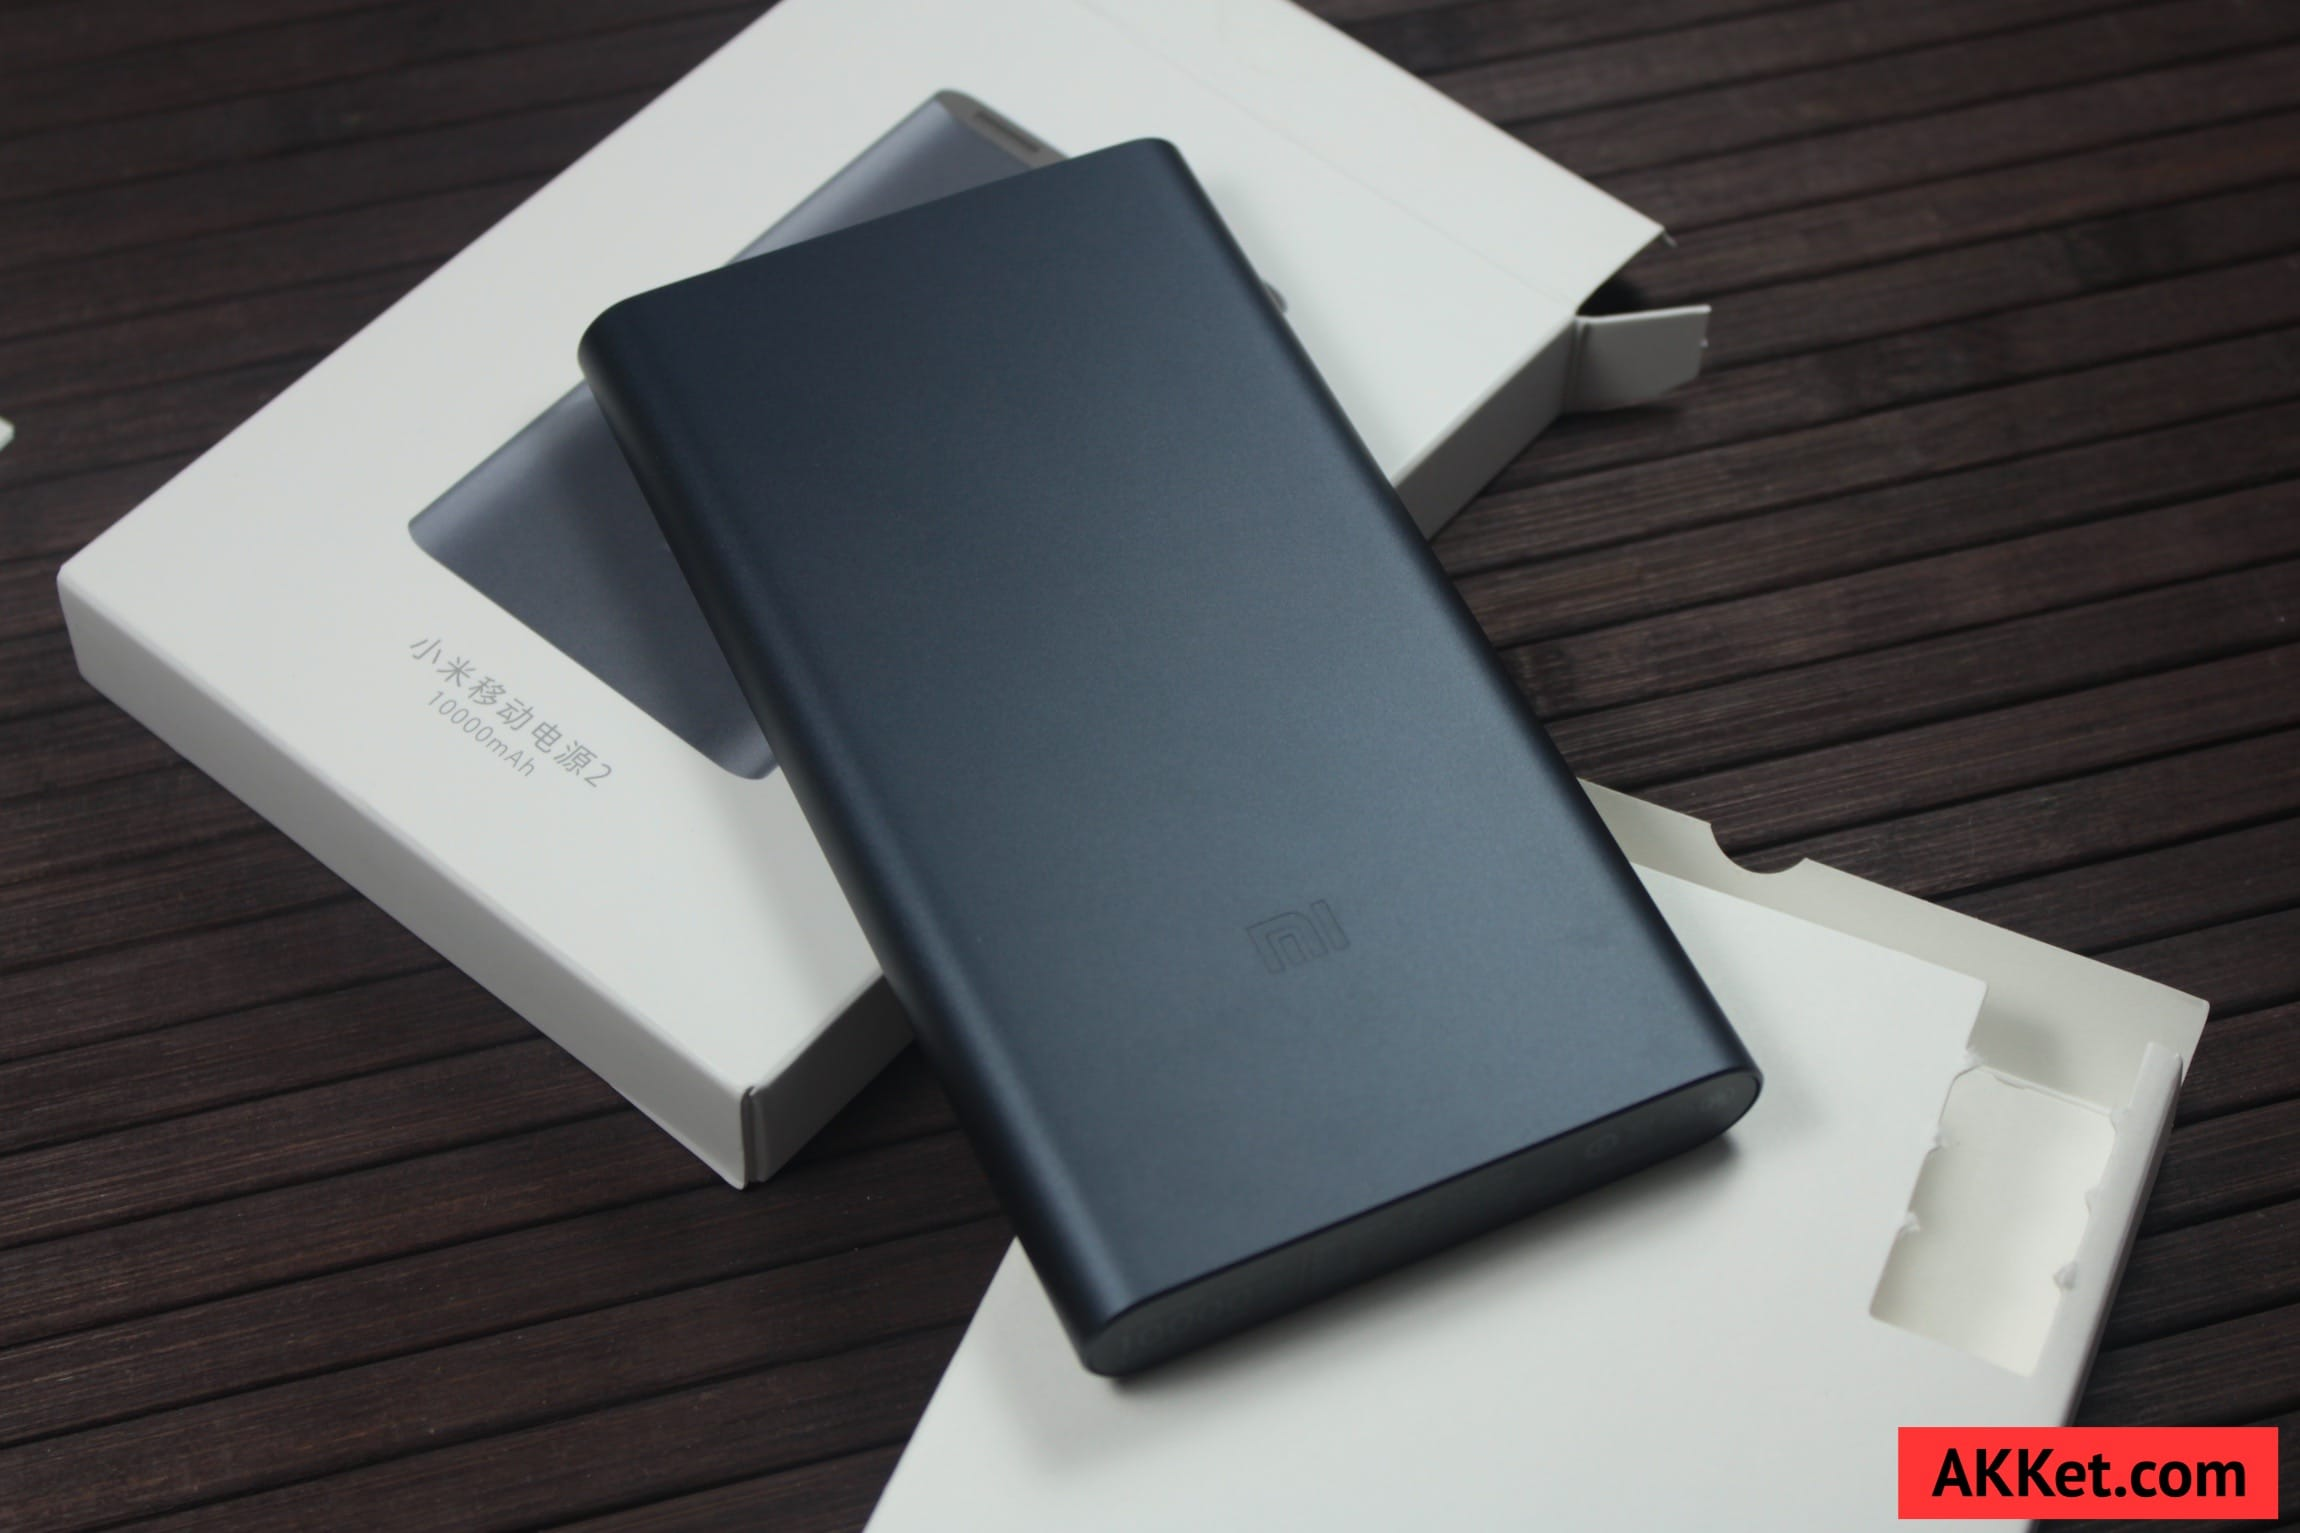 Xiaomi Mi Power Bank 10000 mAh Review iPhone SE AKKet.com 11